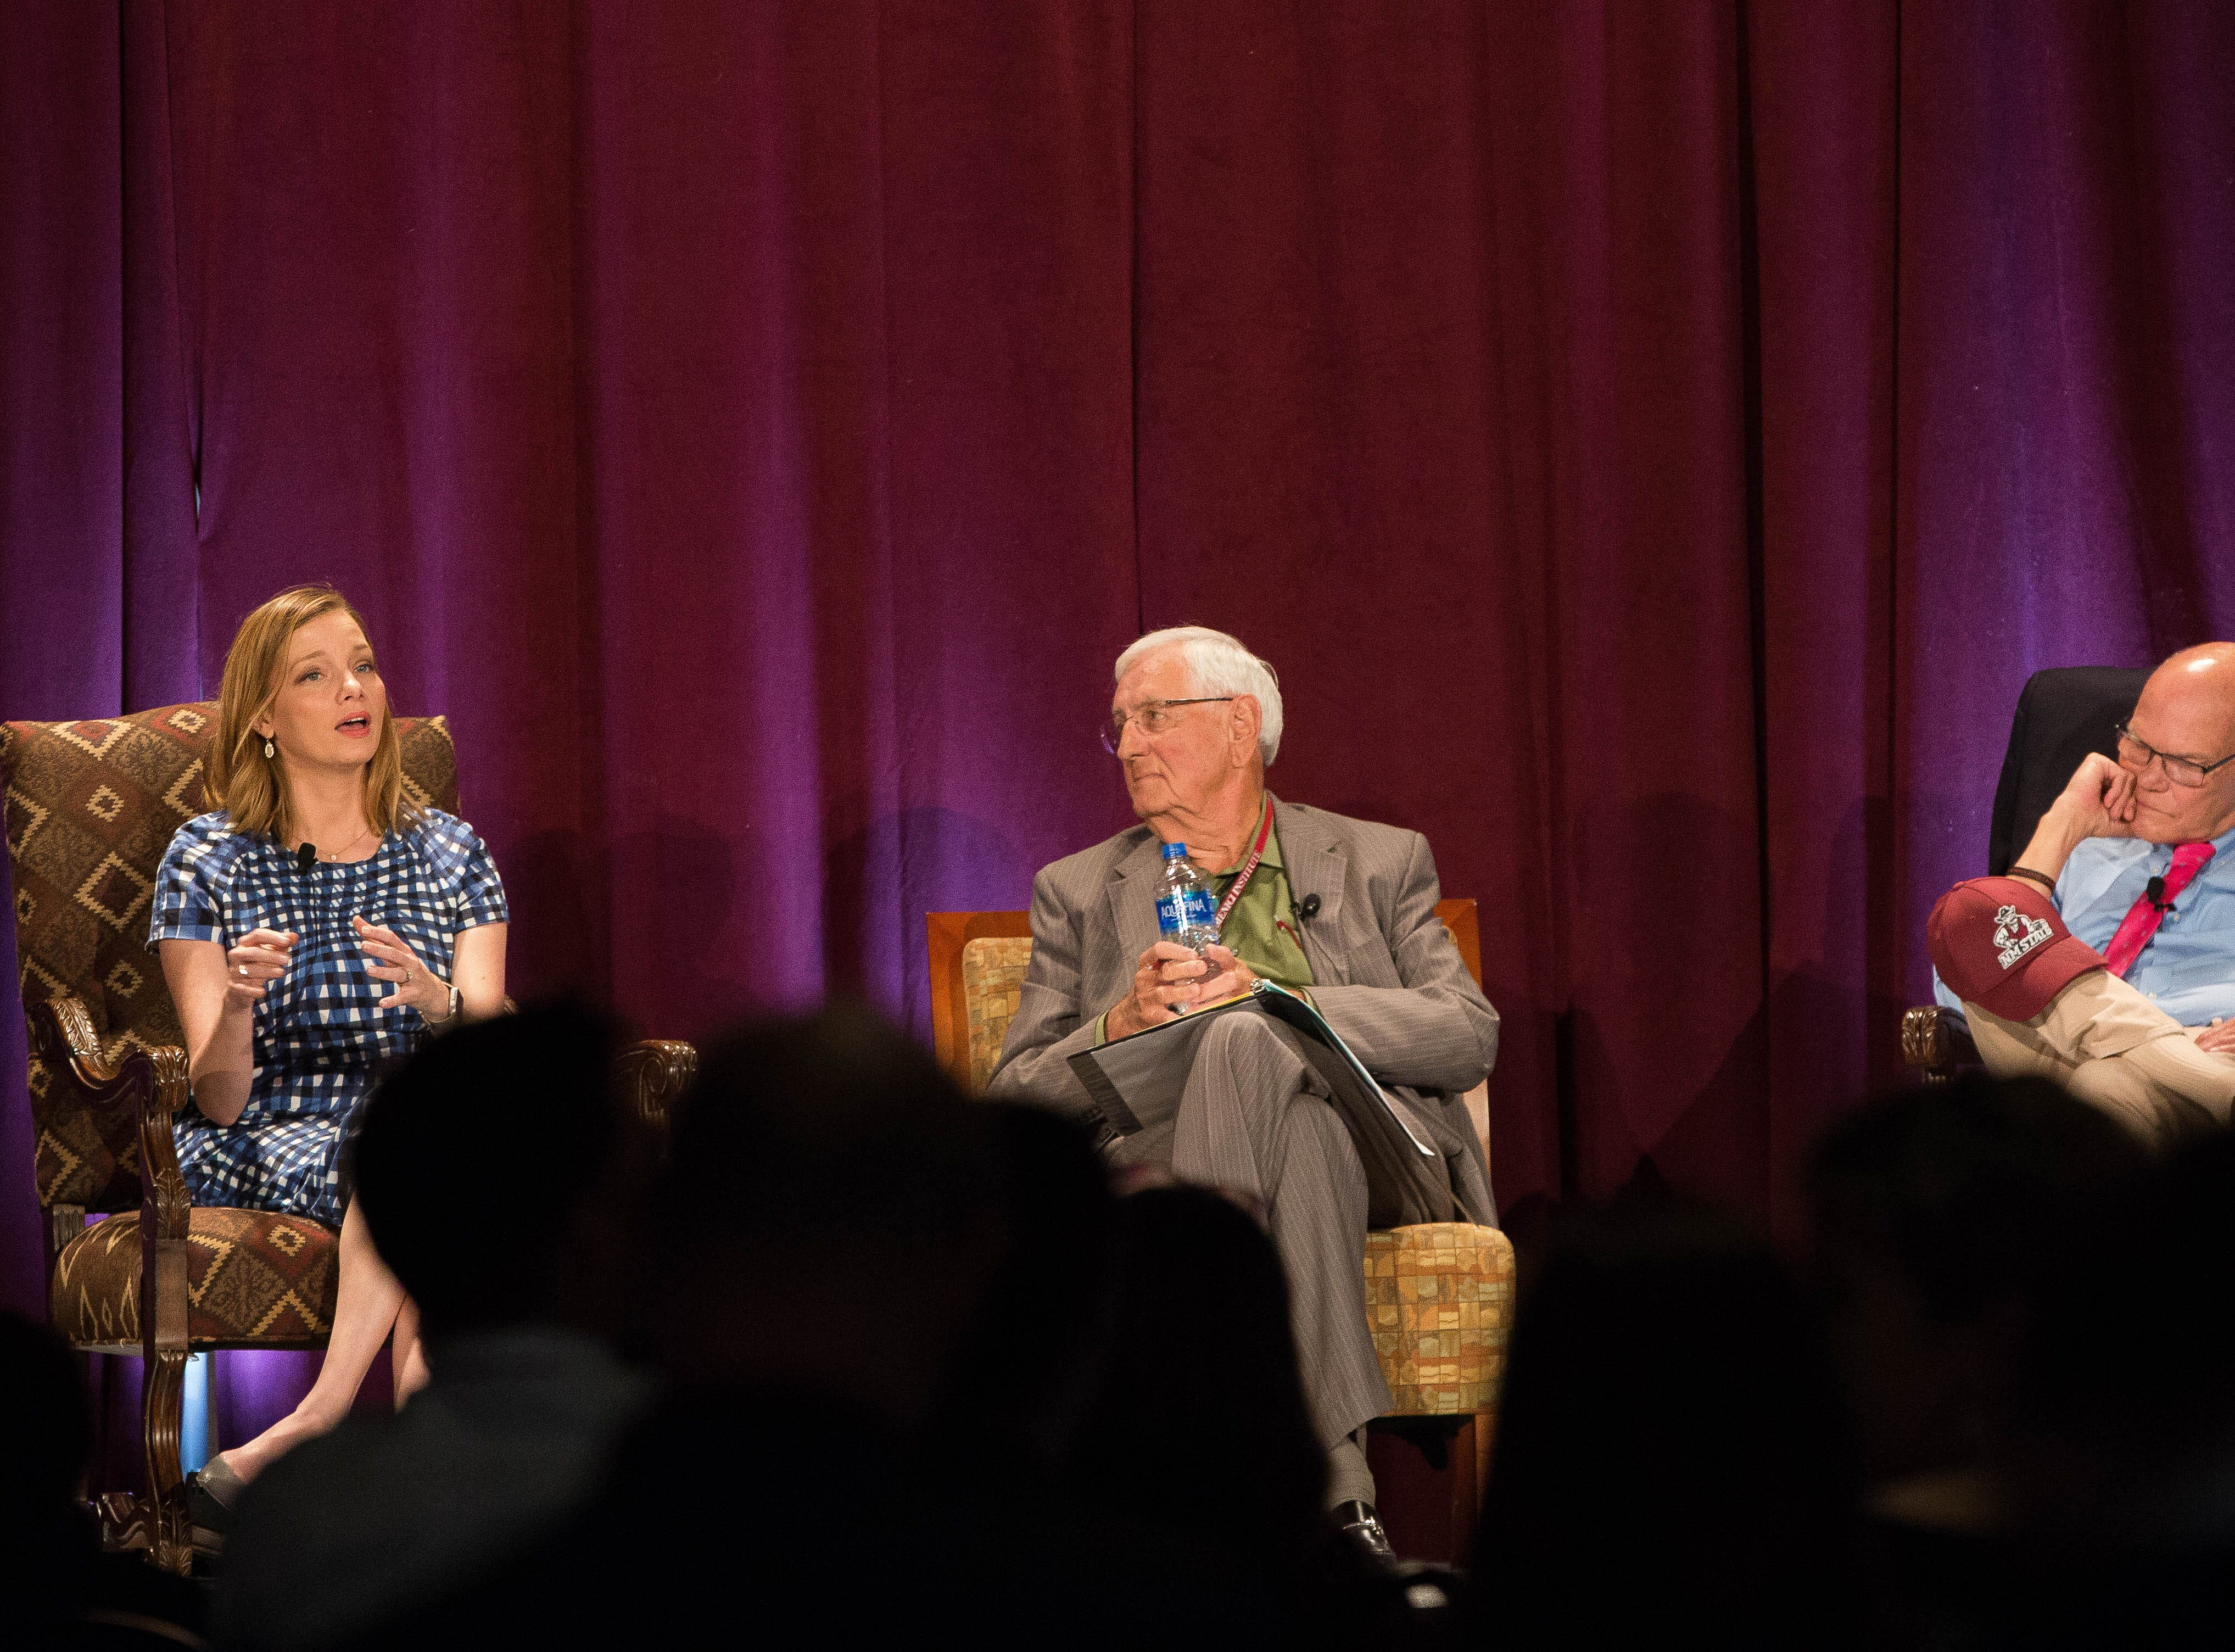 Kristen Soltis Anderson,left, co-founder and partner at Echelon Insights, opened up a panel discussion with Garry Curruthers, center, former New Mexico State University Chancellor and President moderating and James Carville, right, political consultant, discuss the 2018 mid-term elections, during the 2018 Domenici Public Policy Conference at the Las Cruces Convention Center, Thursday September 13, 2018.